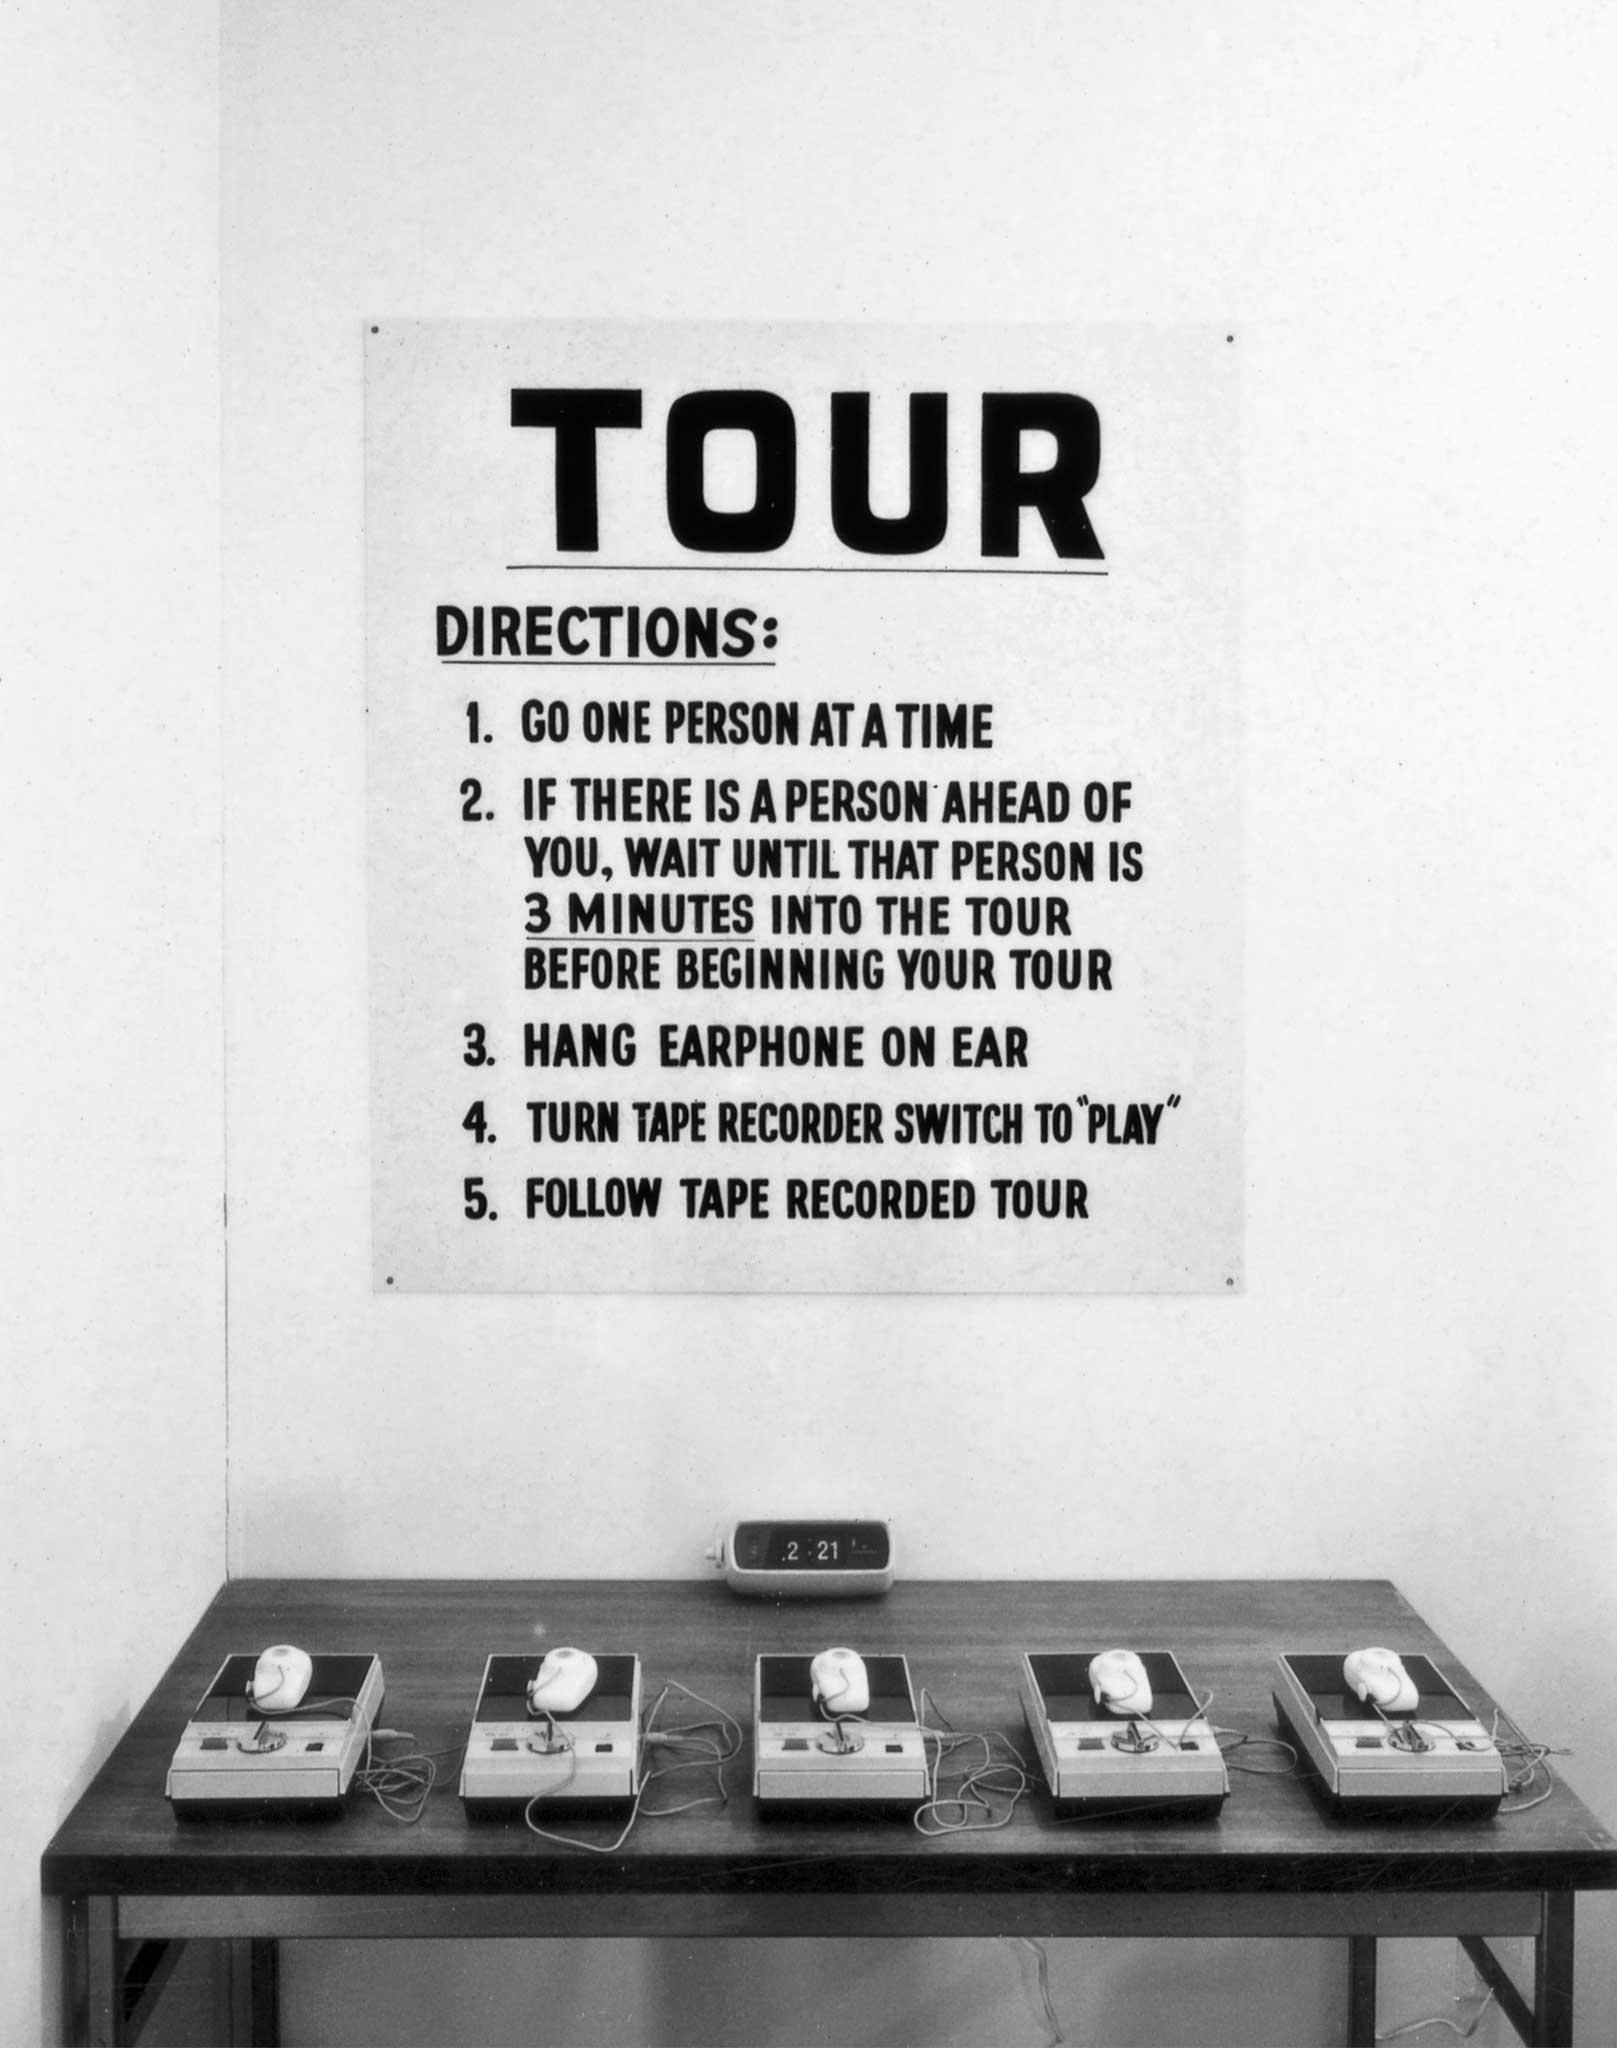 A table with five portable tape recorders and a large sign above it with directions for a guided audio tour